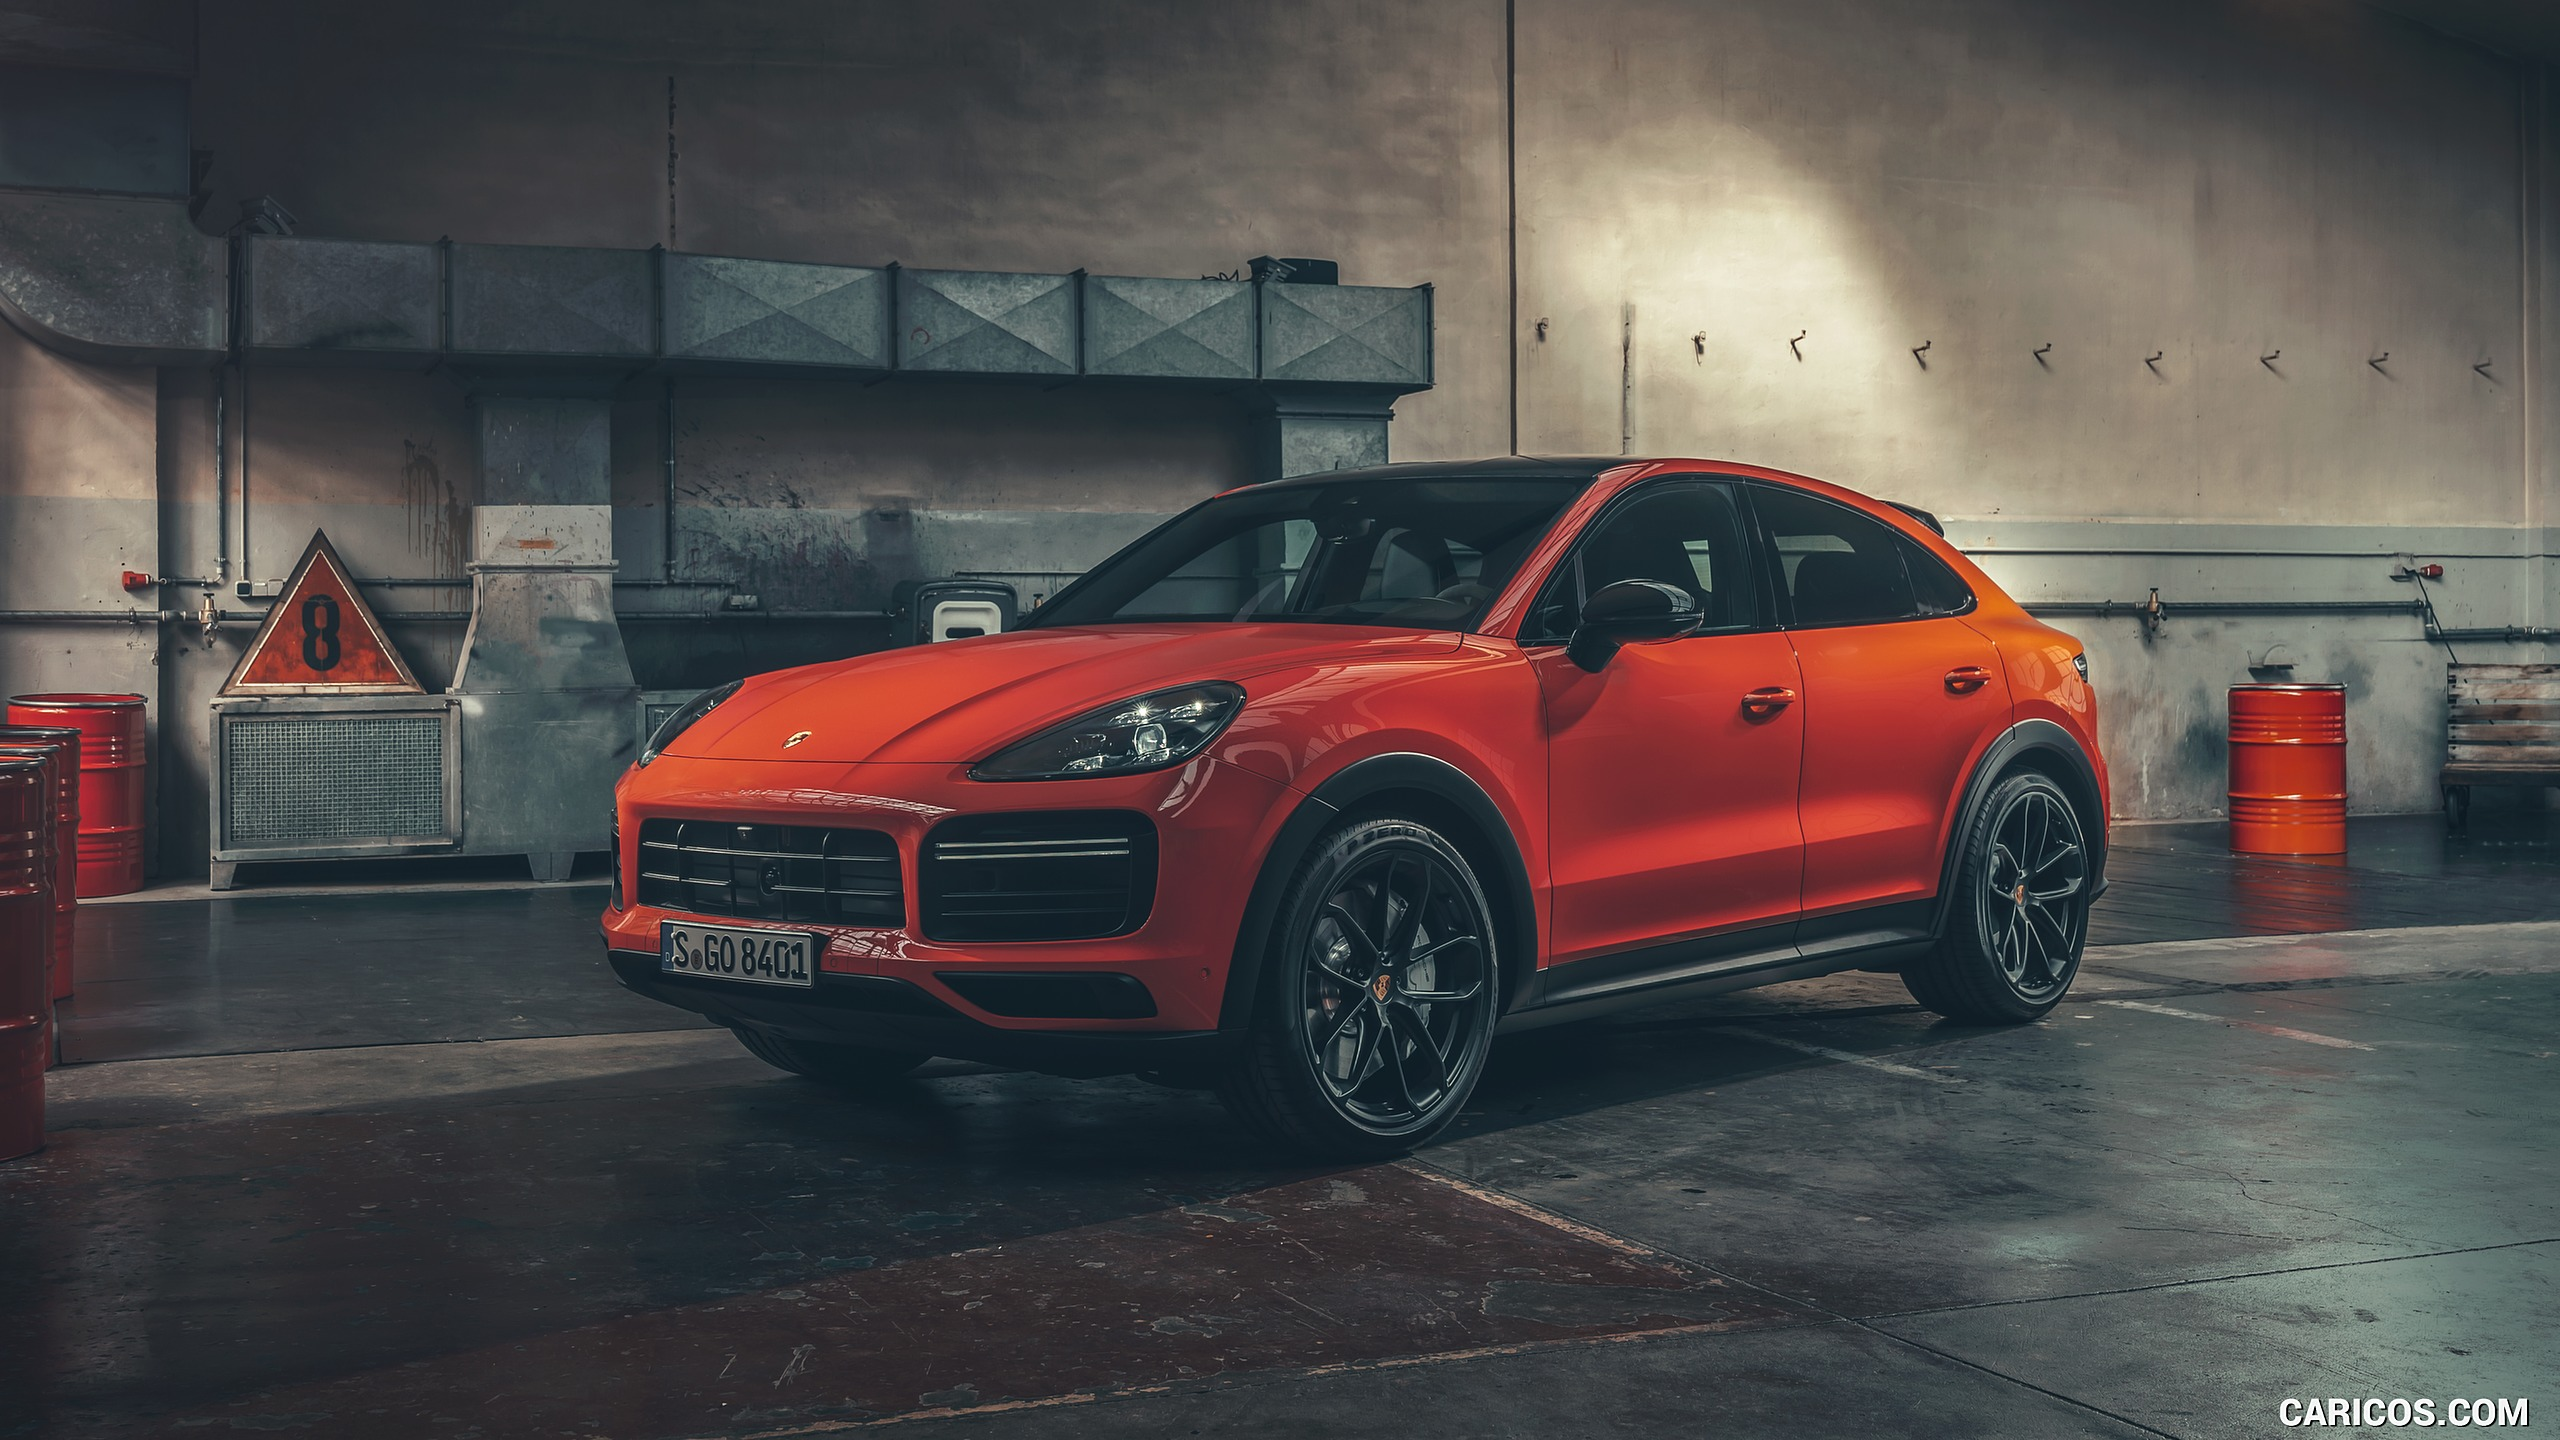 2020 Porsche Cayenne Coupe   Front Three Quarter HD Wallpaper 18 2560x1440